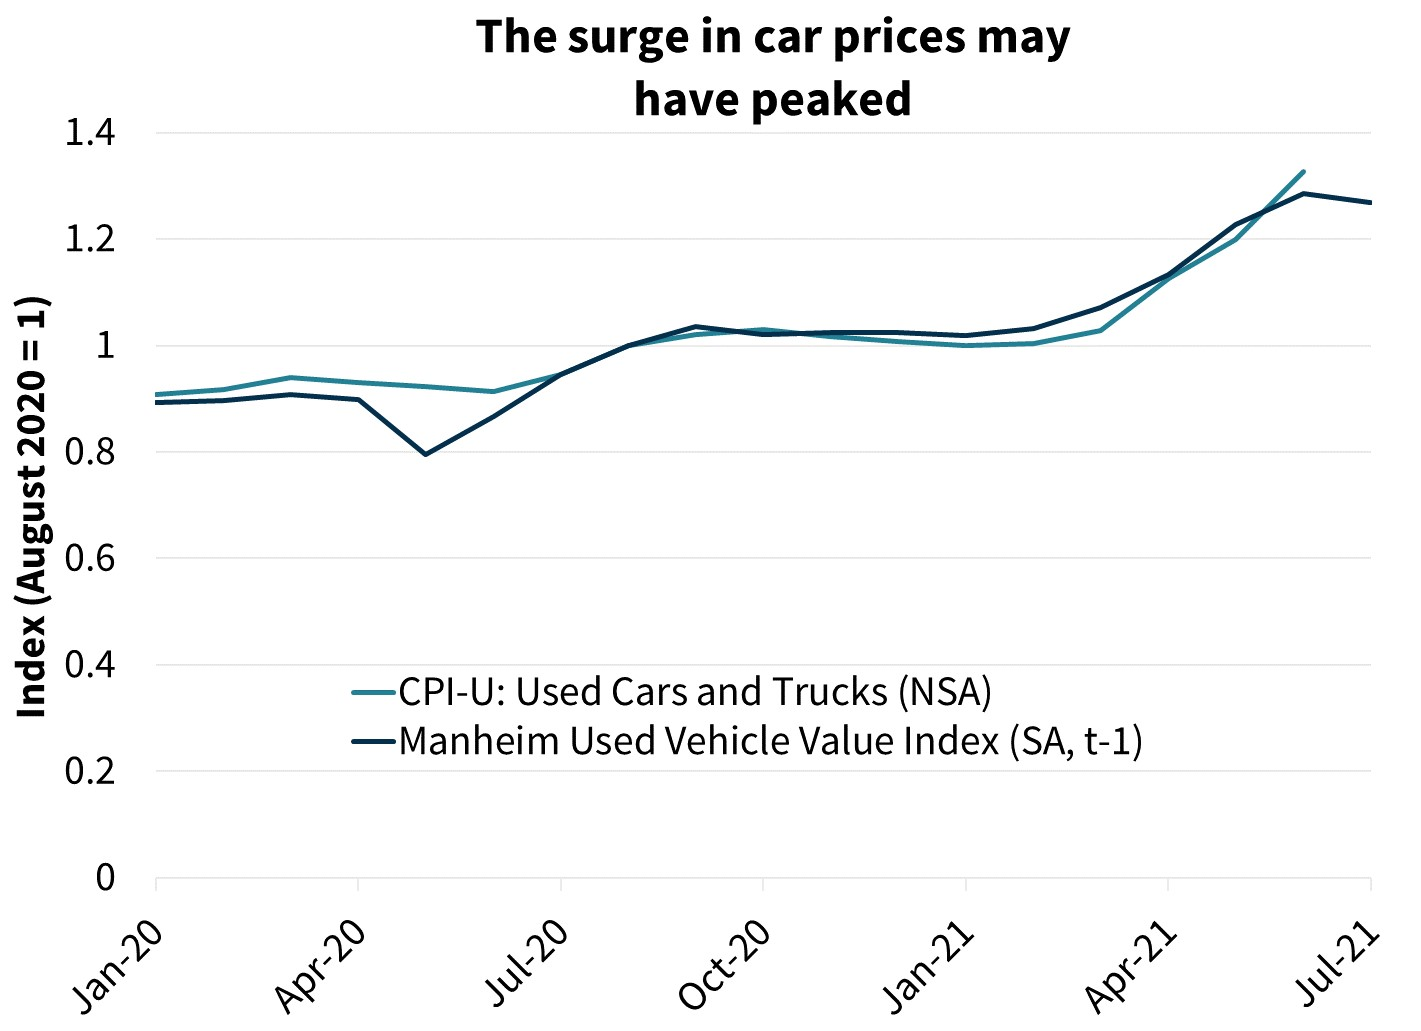 The surge in car prices may have peaked